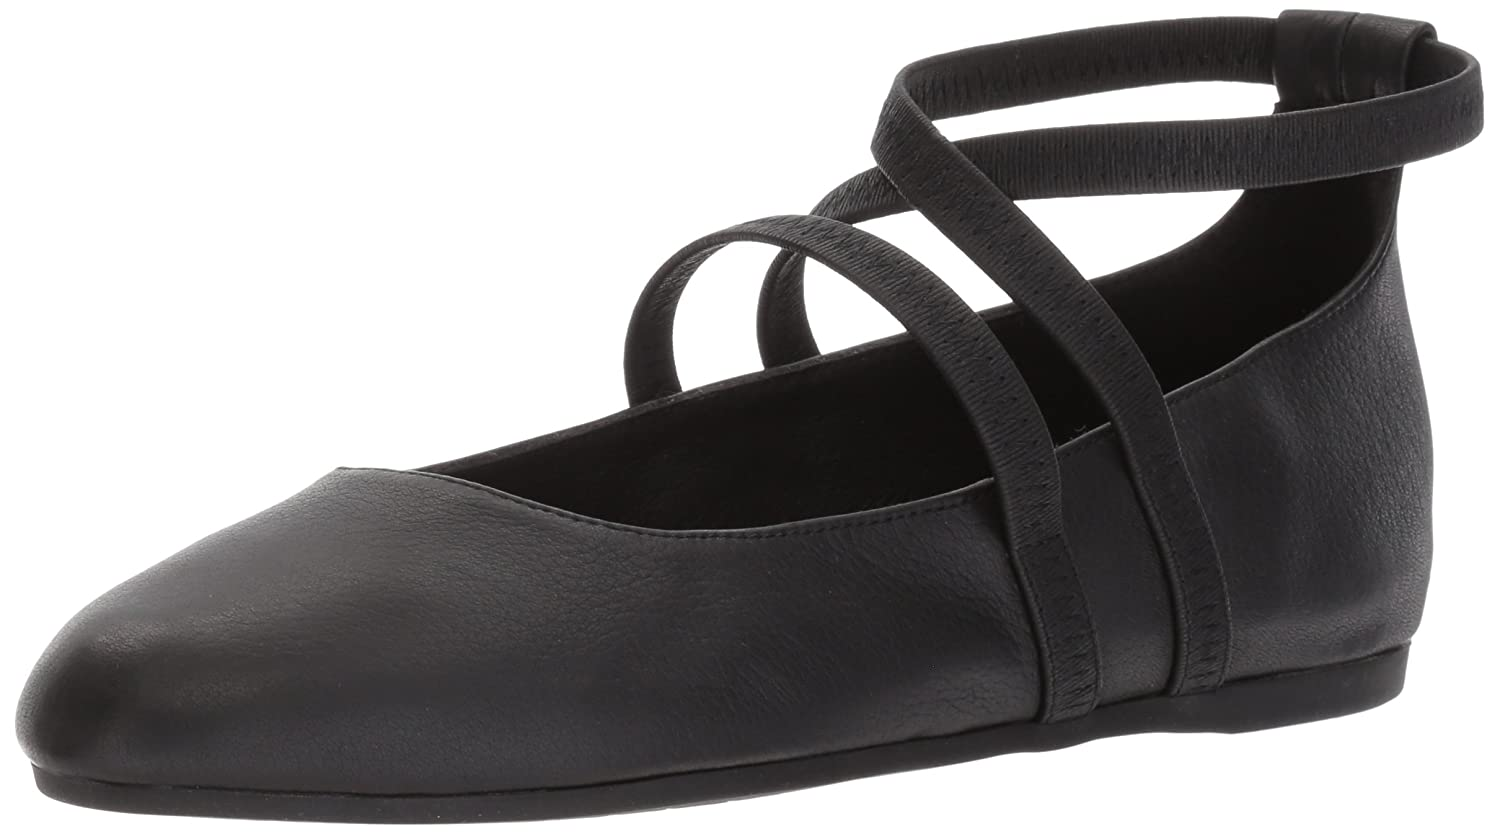 Eileen Fisher Women's 10 Joe Ballet Flat B01N5FWDJG 10 Women's B(M) US|Black 056270